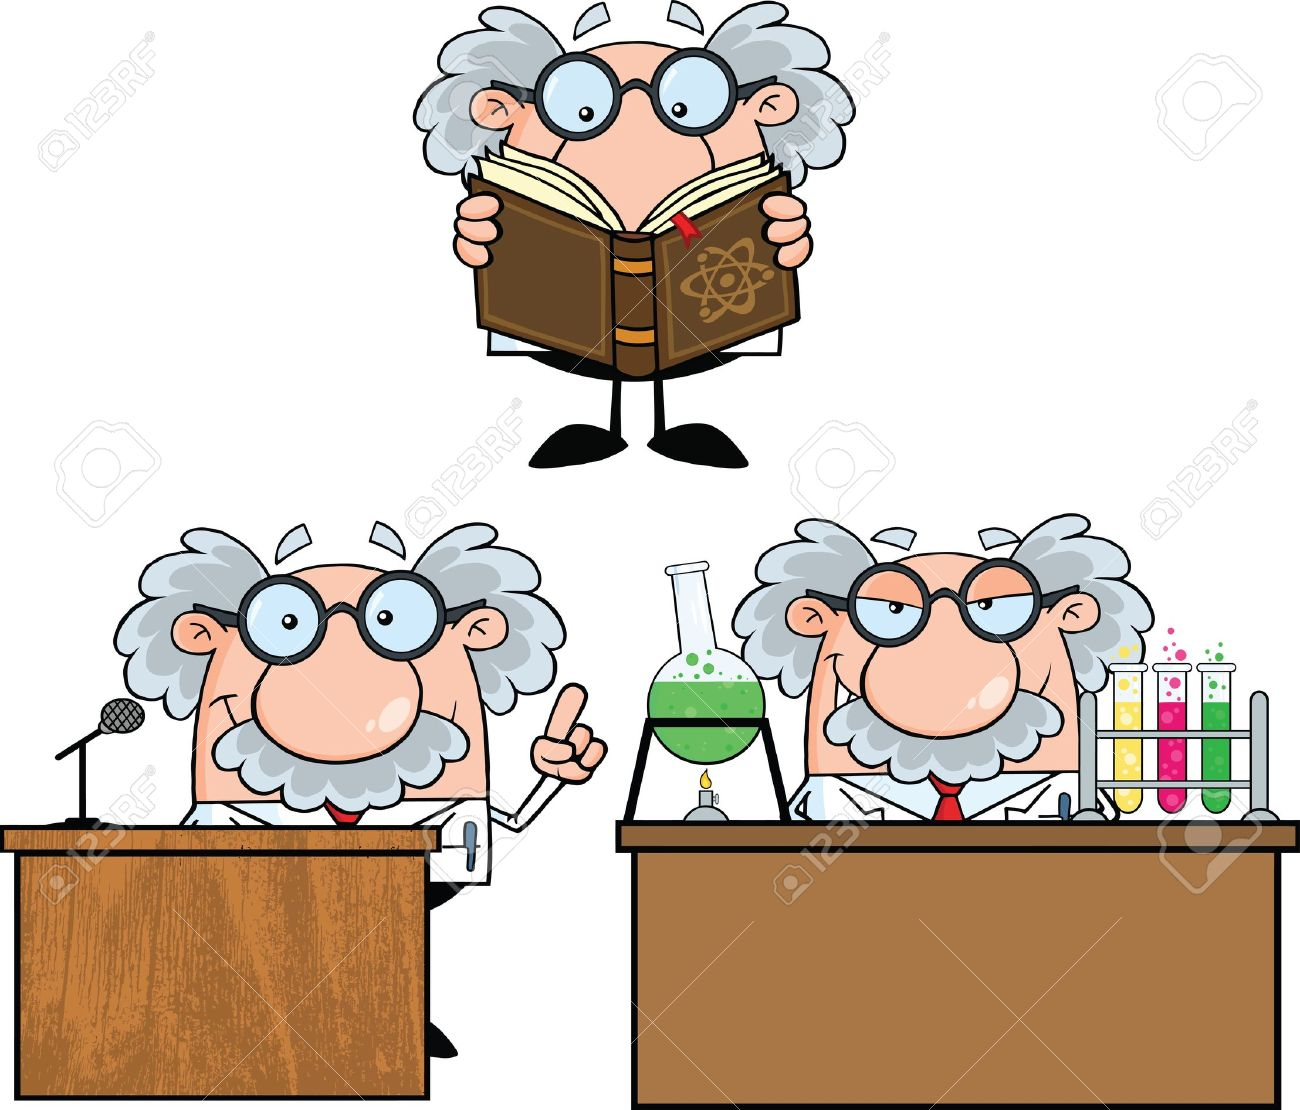 Funny Scientist Or Professor Cartoon Characters Set Collection 6 - 21699449